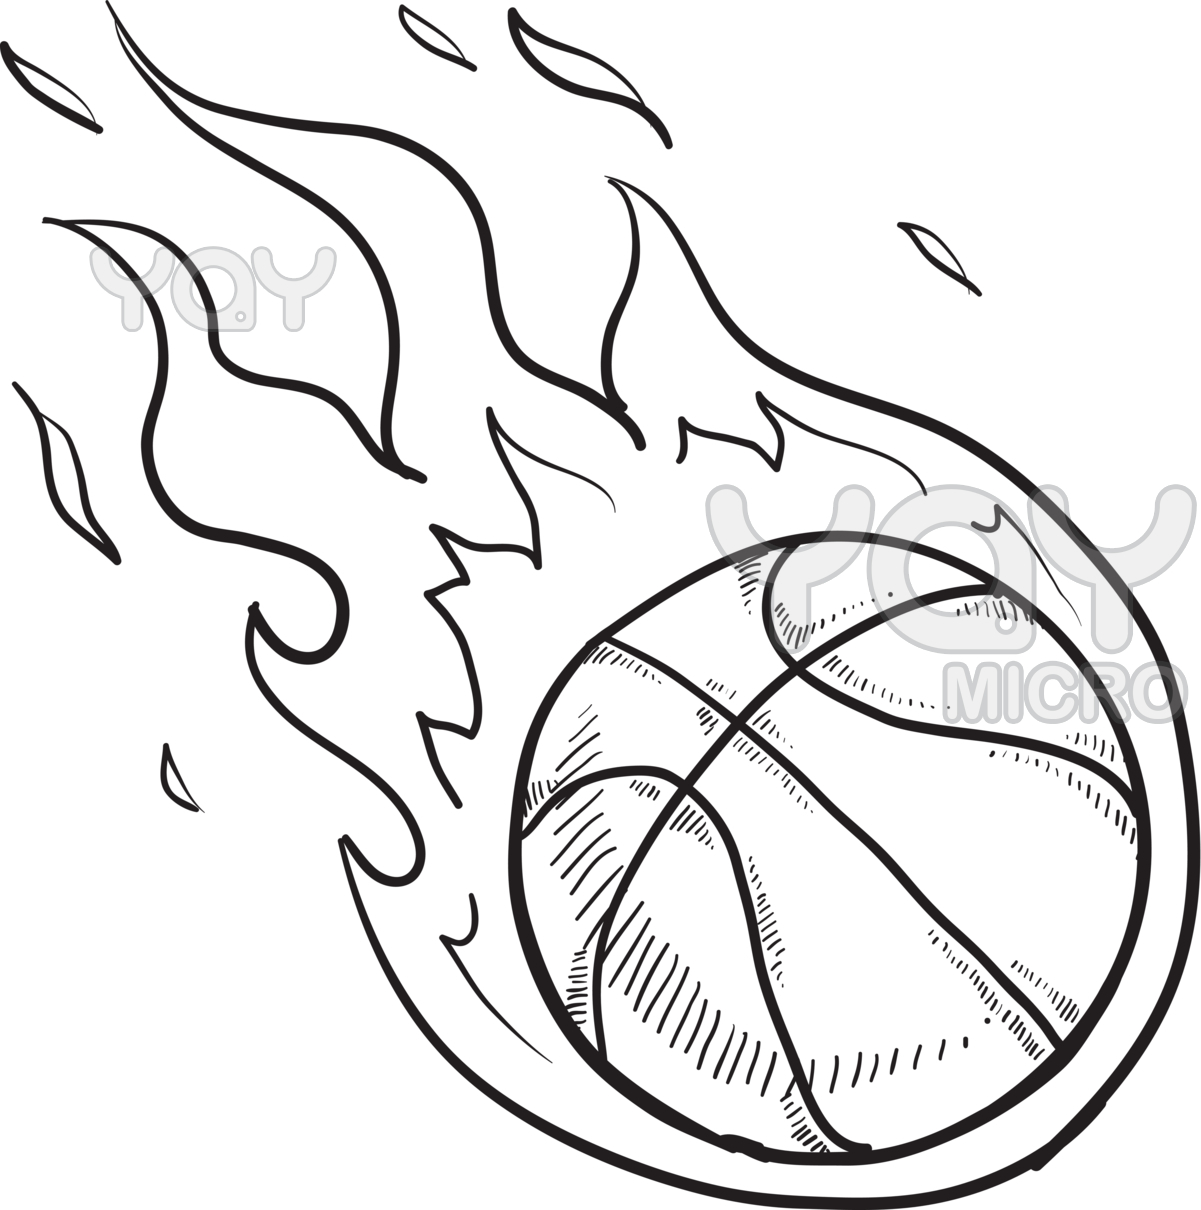 1201x1210 Basketball Coloring Page Pages Education Pinterest Clip Art